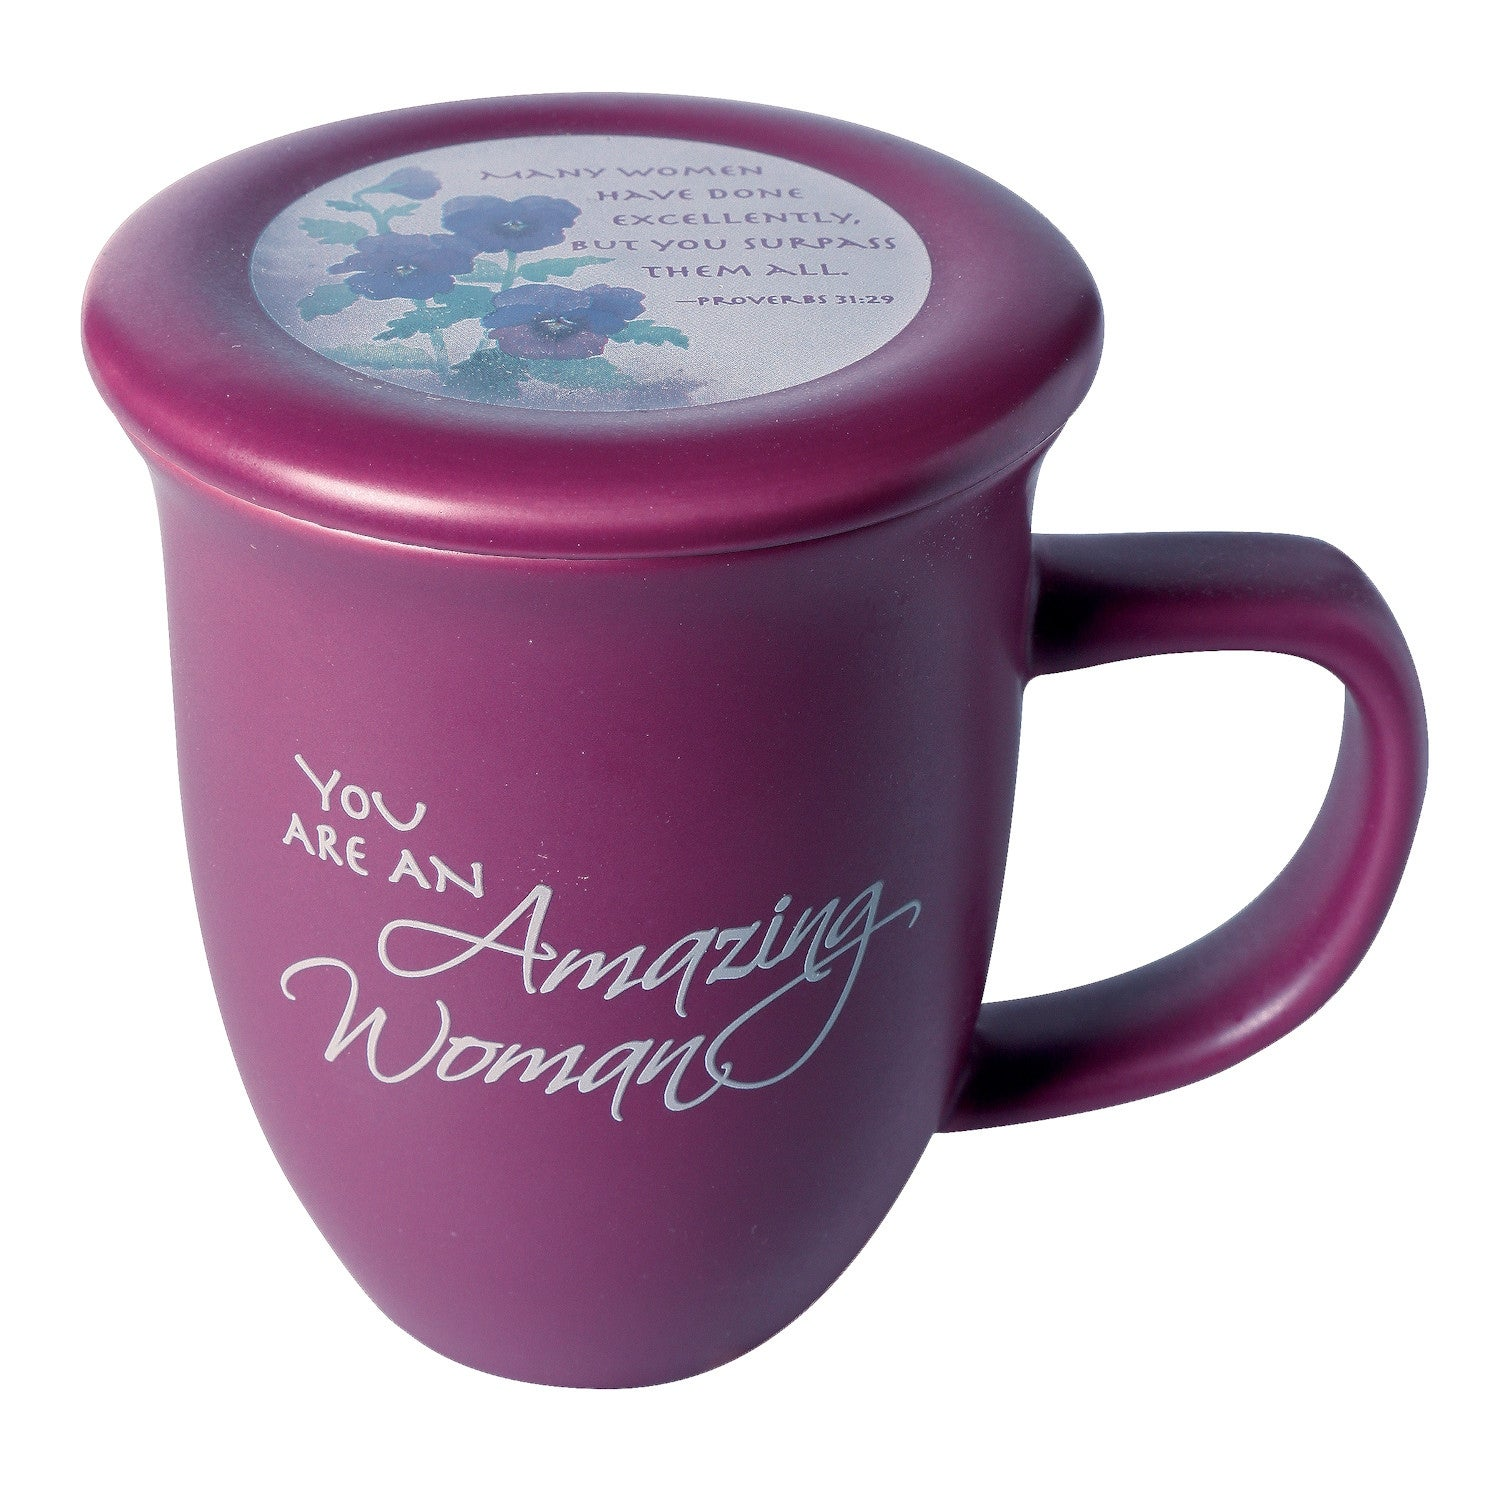 4 Cup Purple Mugamp;coasterlid 14 Ounce Woman Amazing Ceramic Coffeetea 5 Dusky 25 InX Yfgv67by